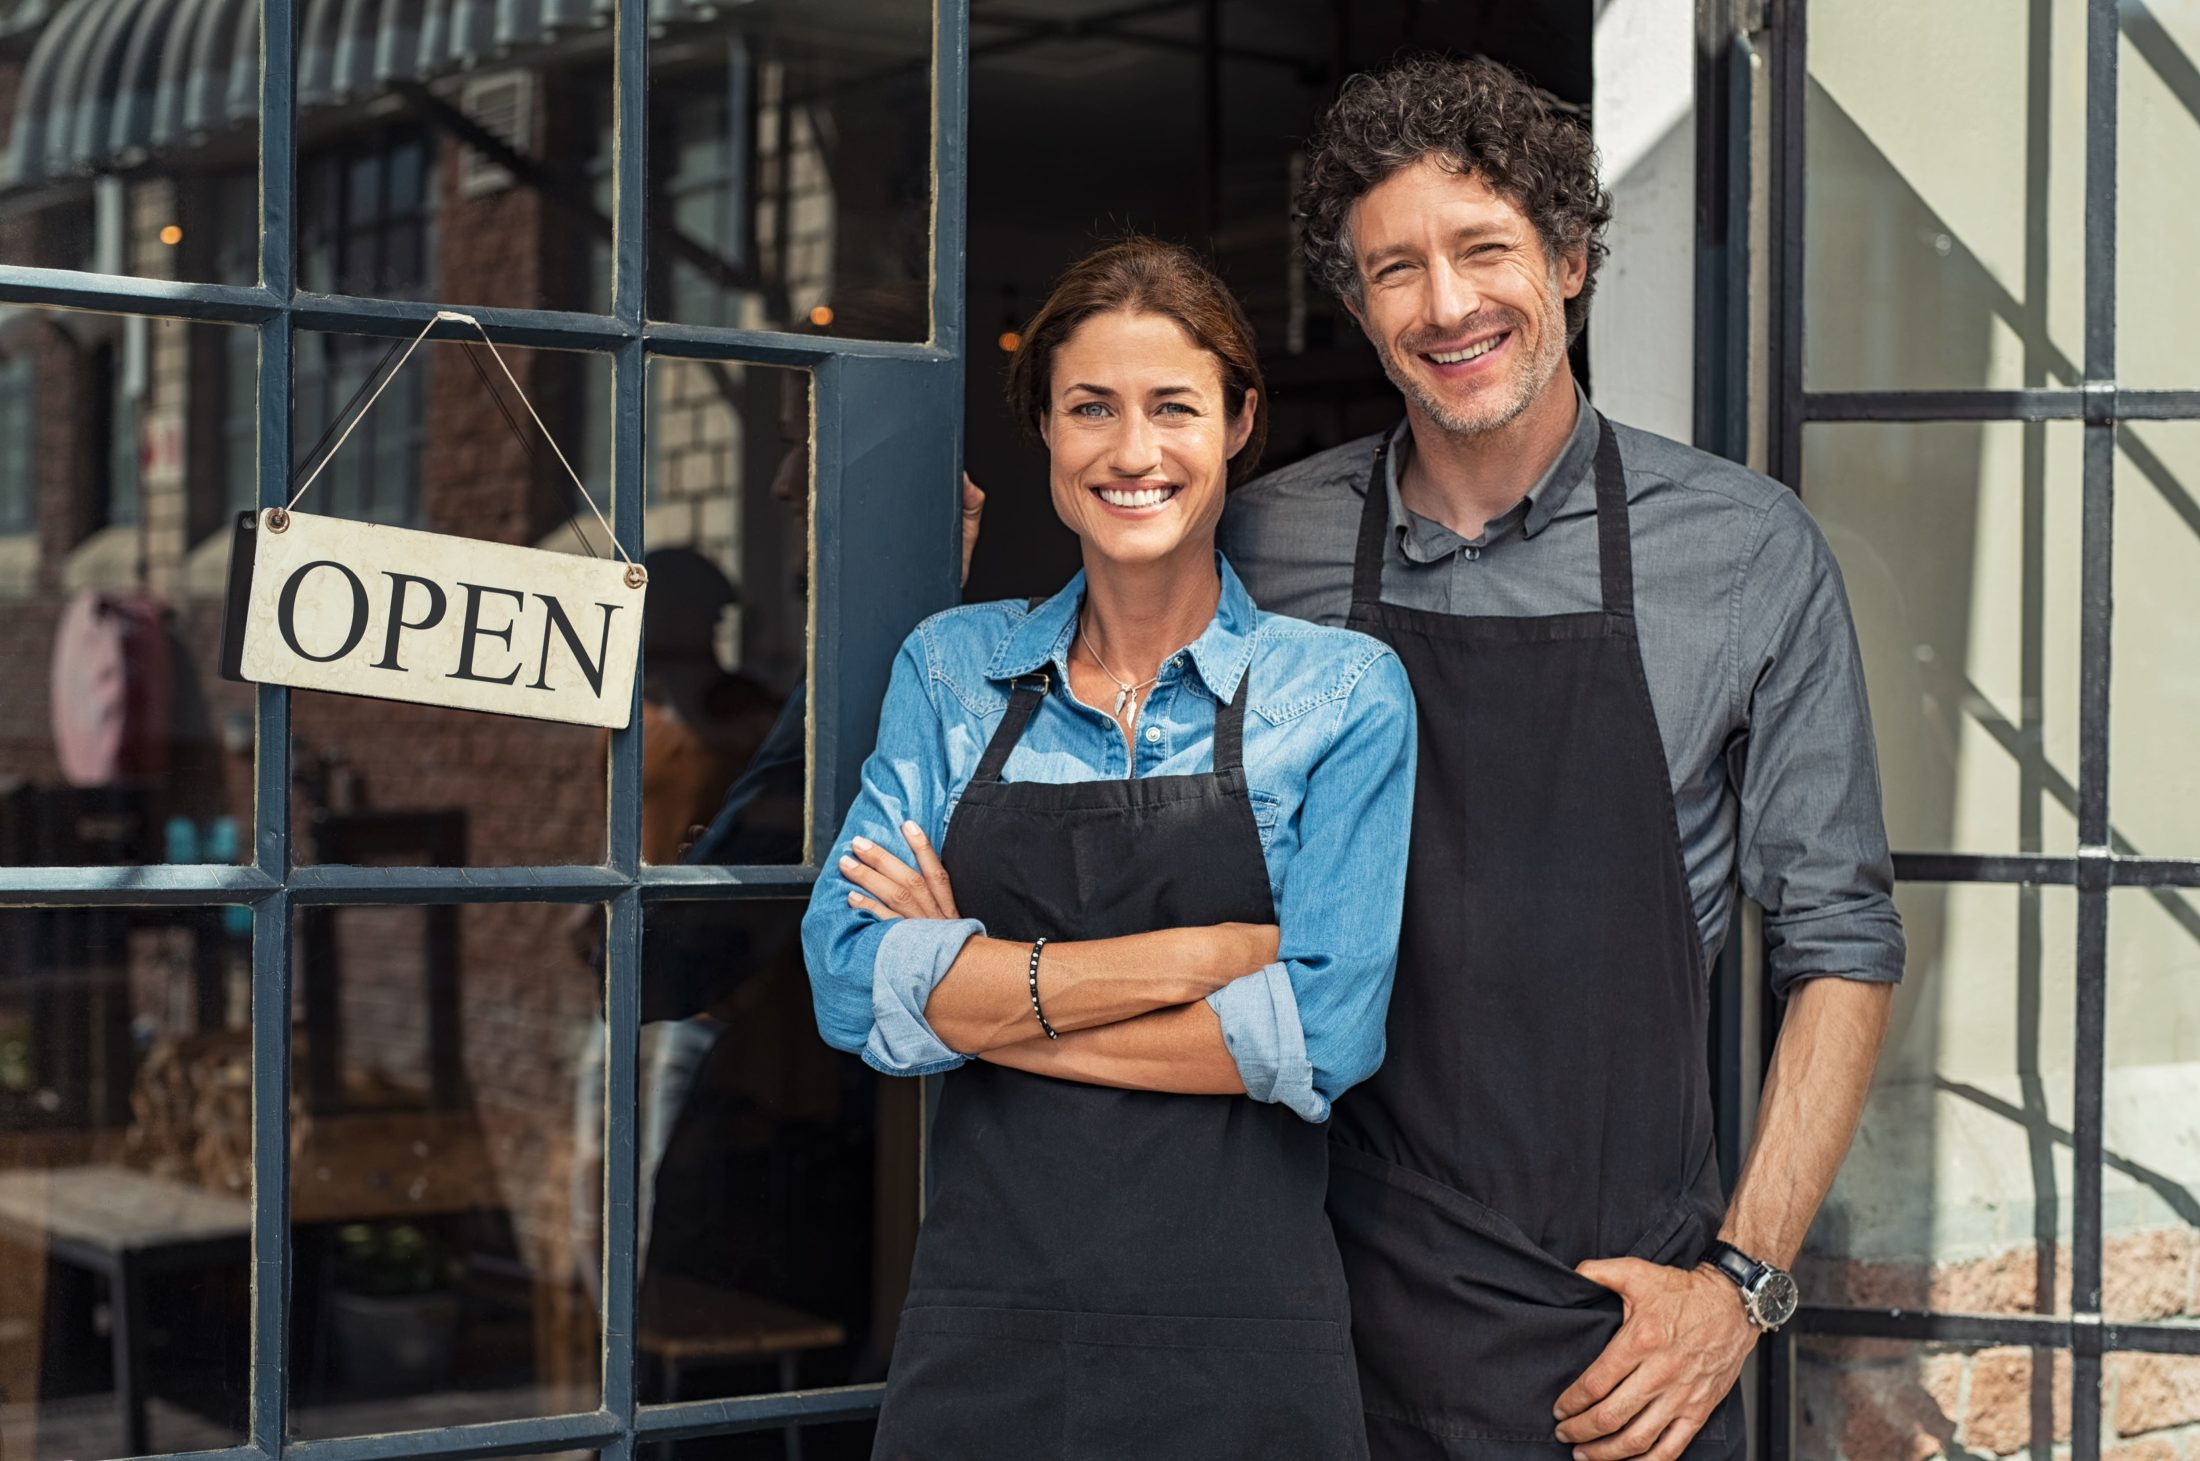 small-business-owners-couple-DUENGKX-min